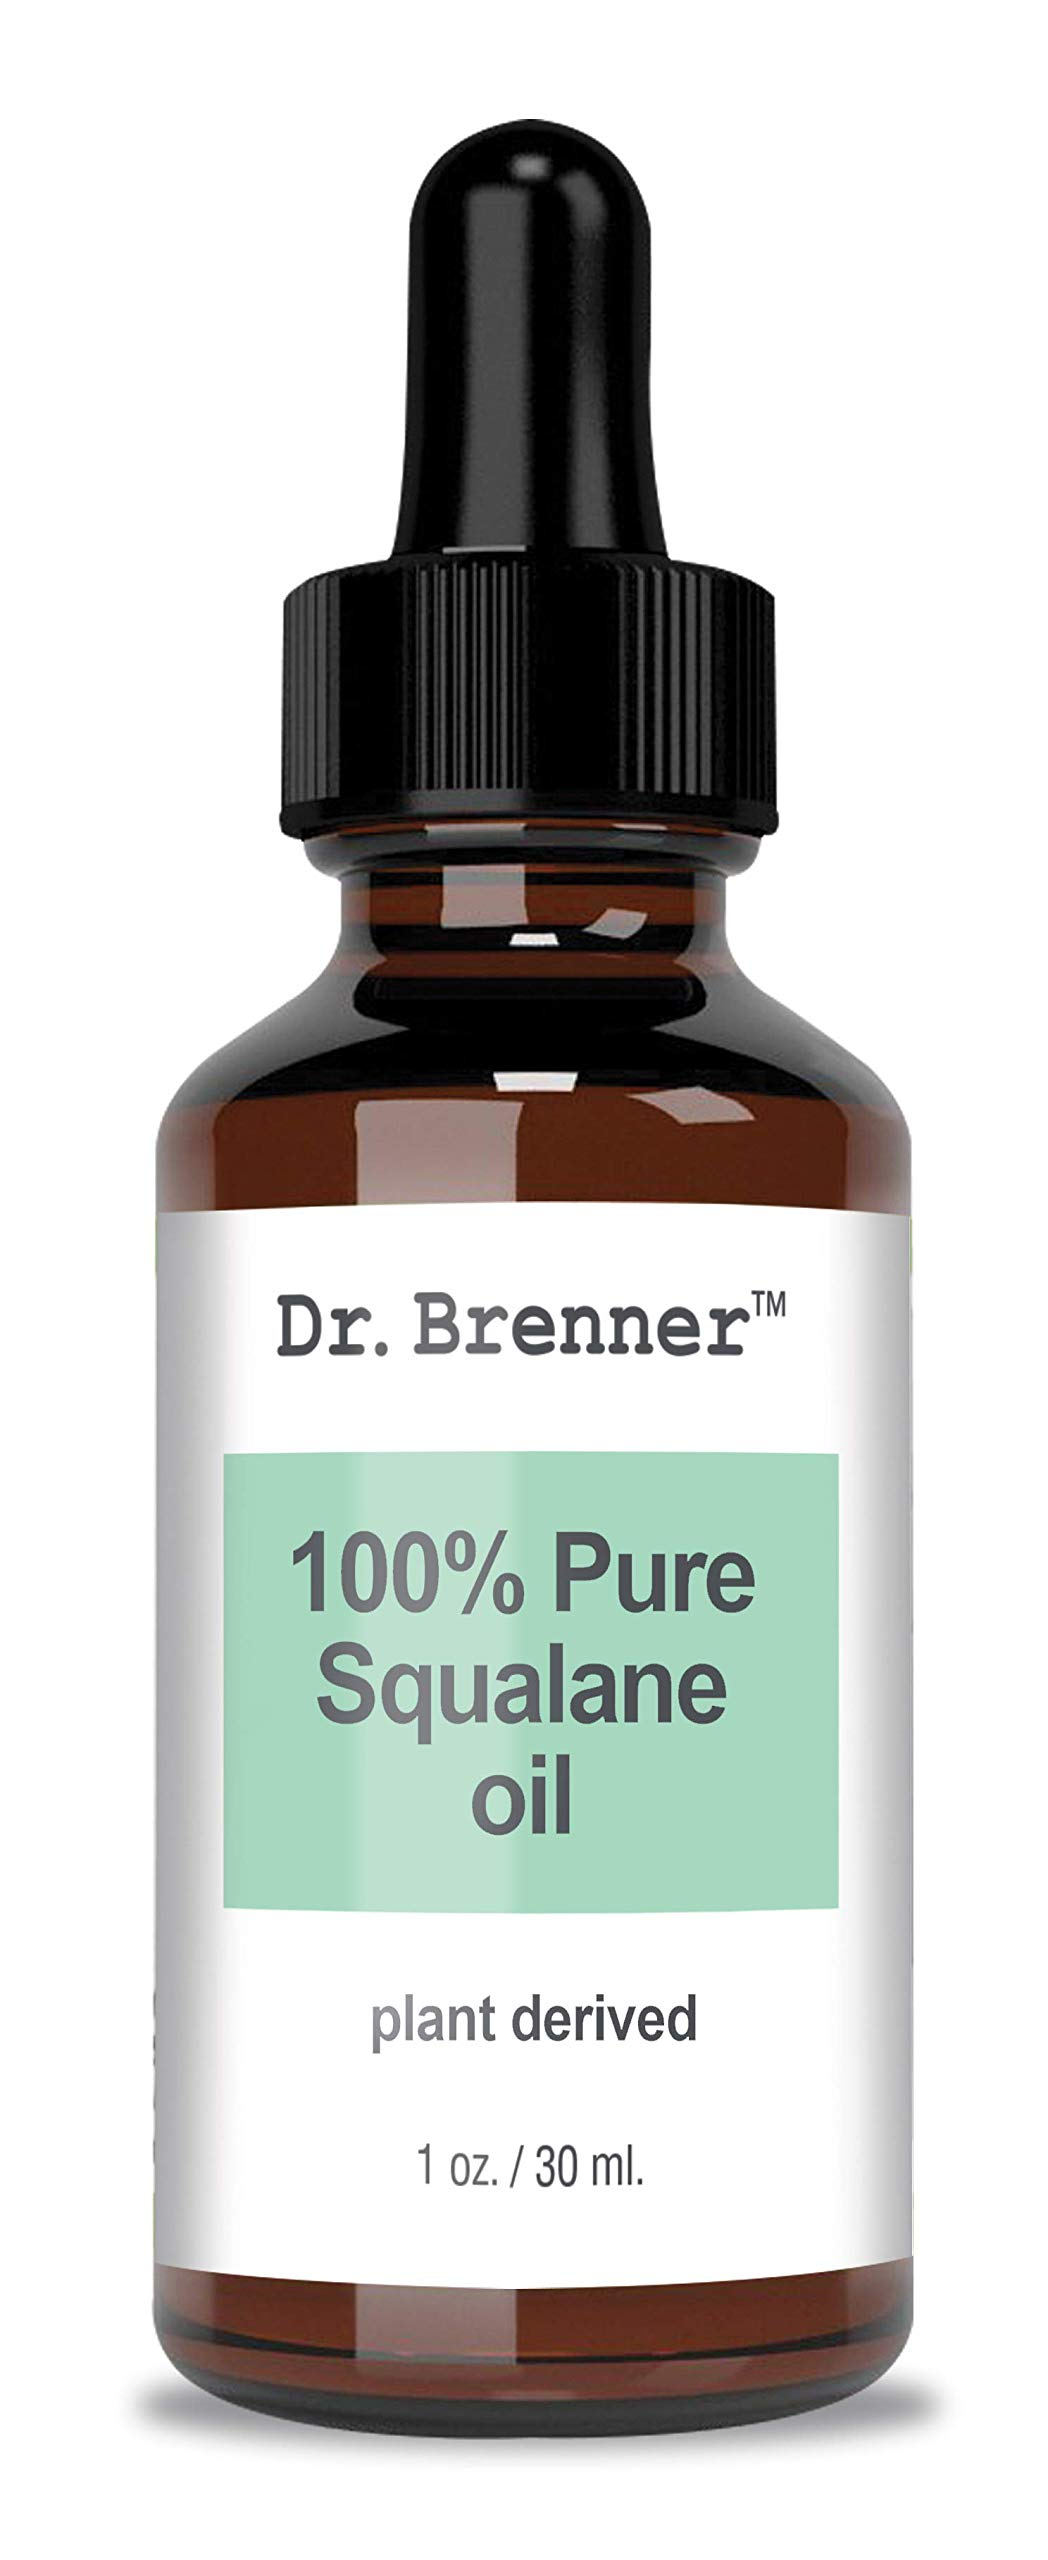 100% Pure Squalane Face Oil Anti Aging Moisturizer Derived From Fresh Olives For Skin And Hair 1oz. (1 oz)